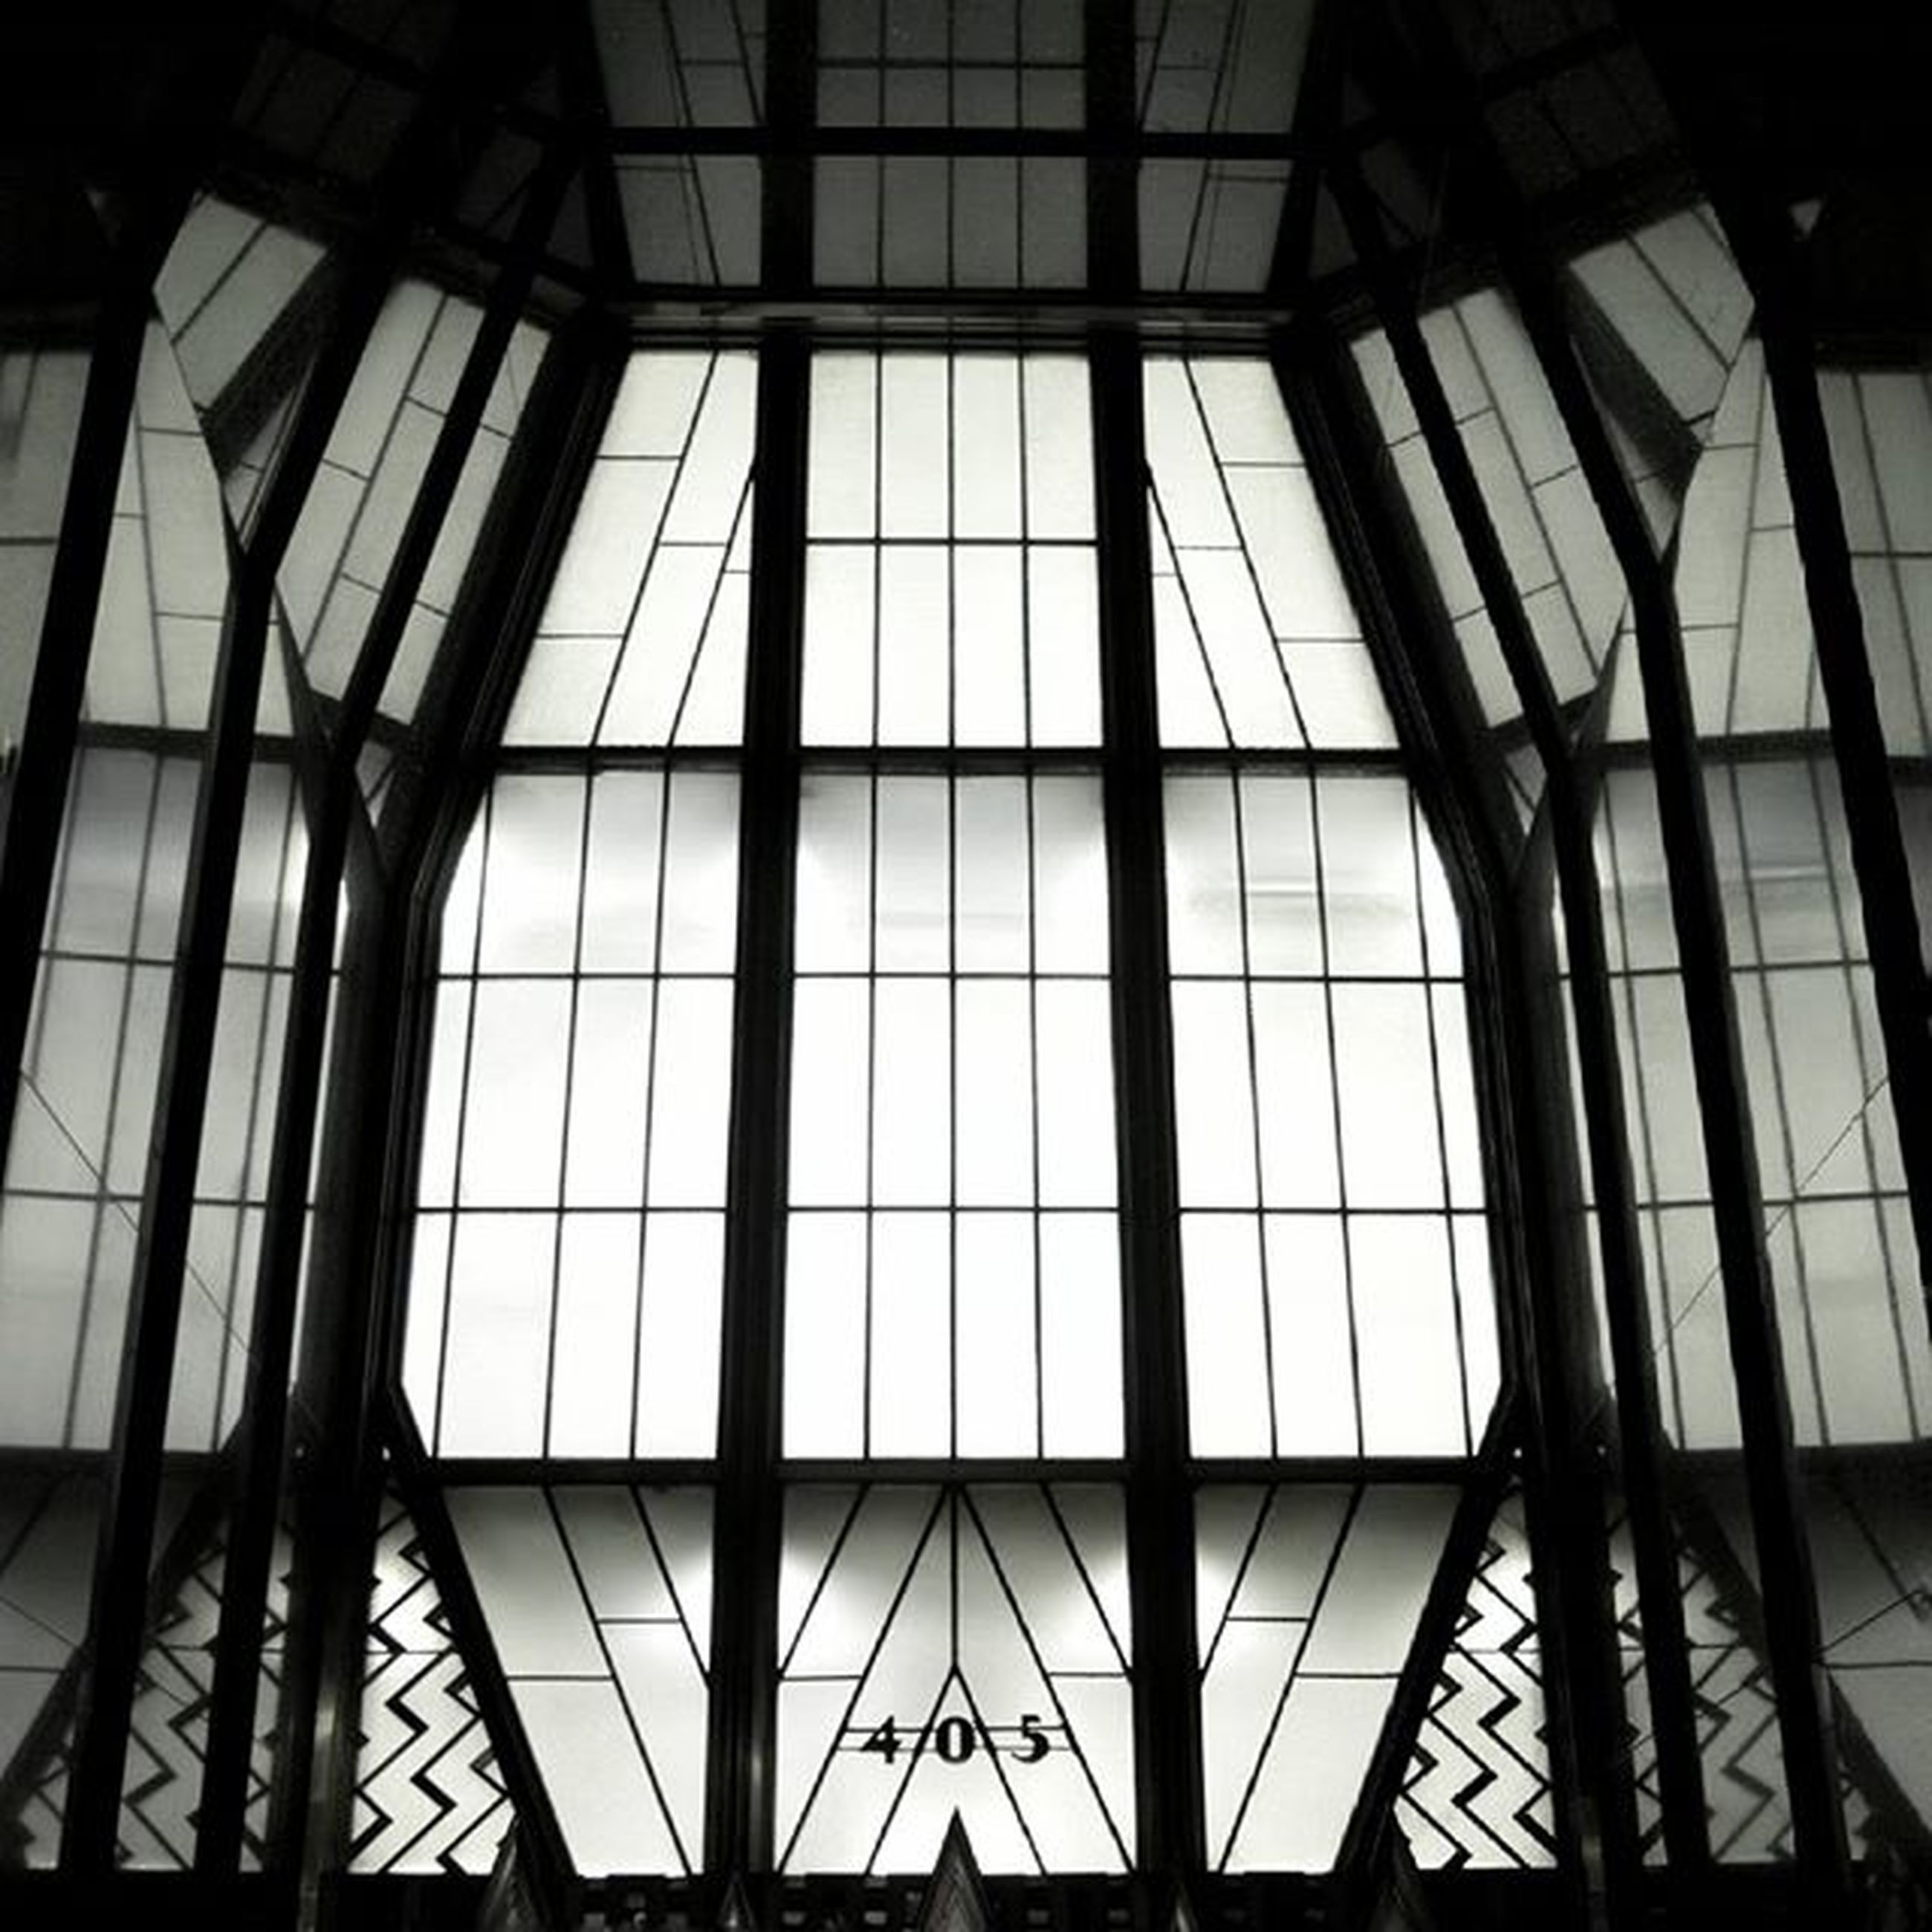 indoors, architecture, glass - material, built structure, ceiling, low angle view, window, pattern, skylight, transparent, modern, architectural feature, geometric shape, full frame, backgrounds, no people, design, building, glass, reflection